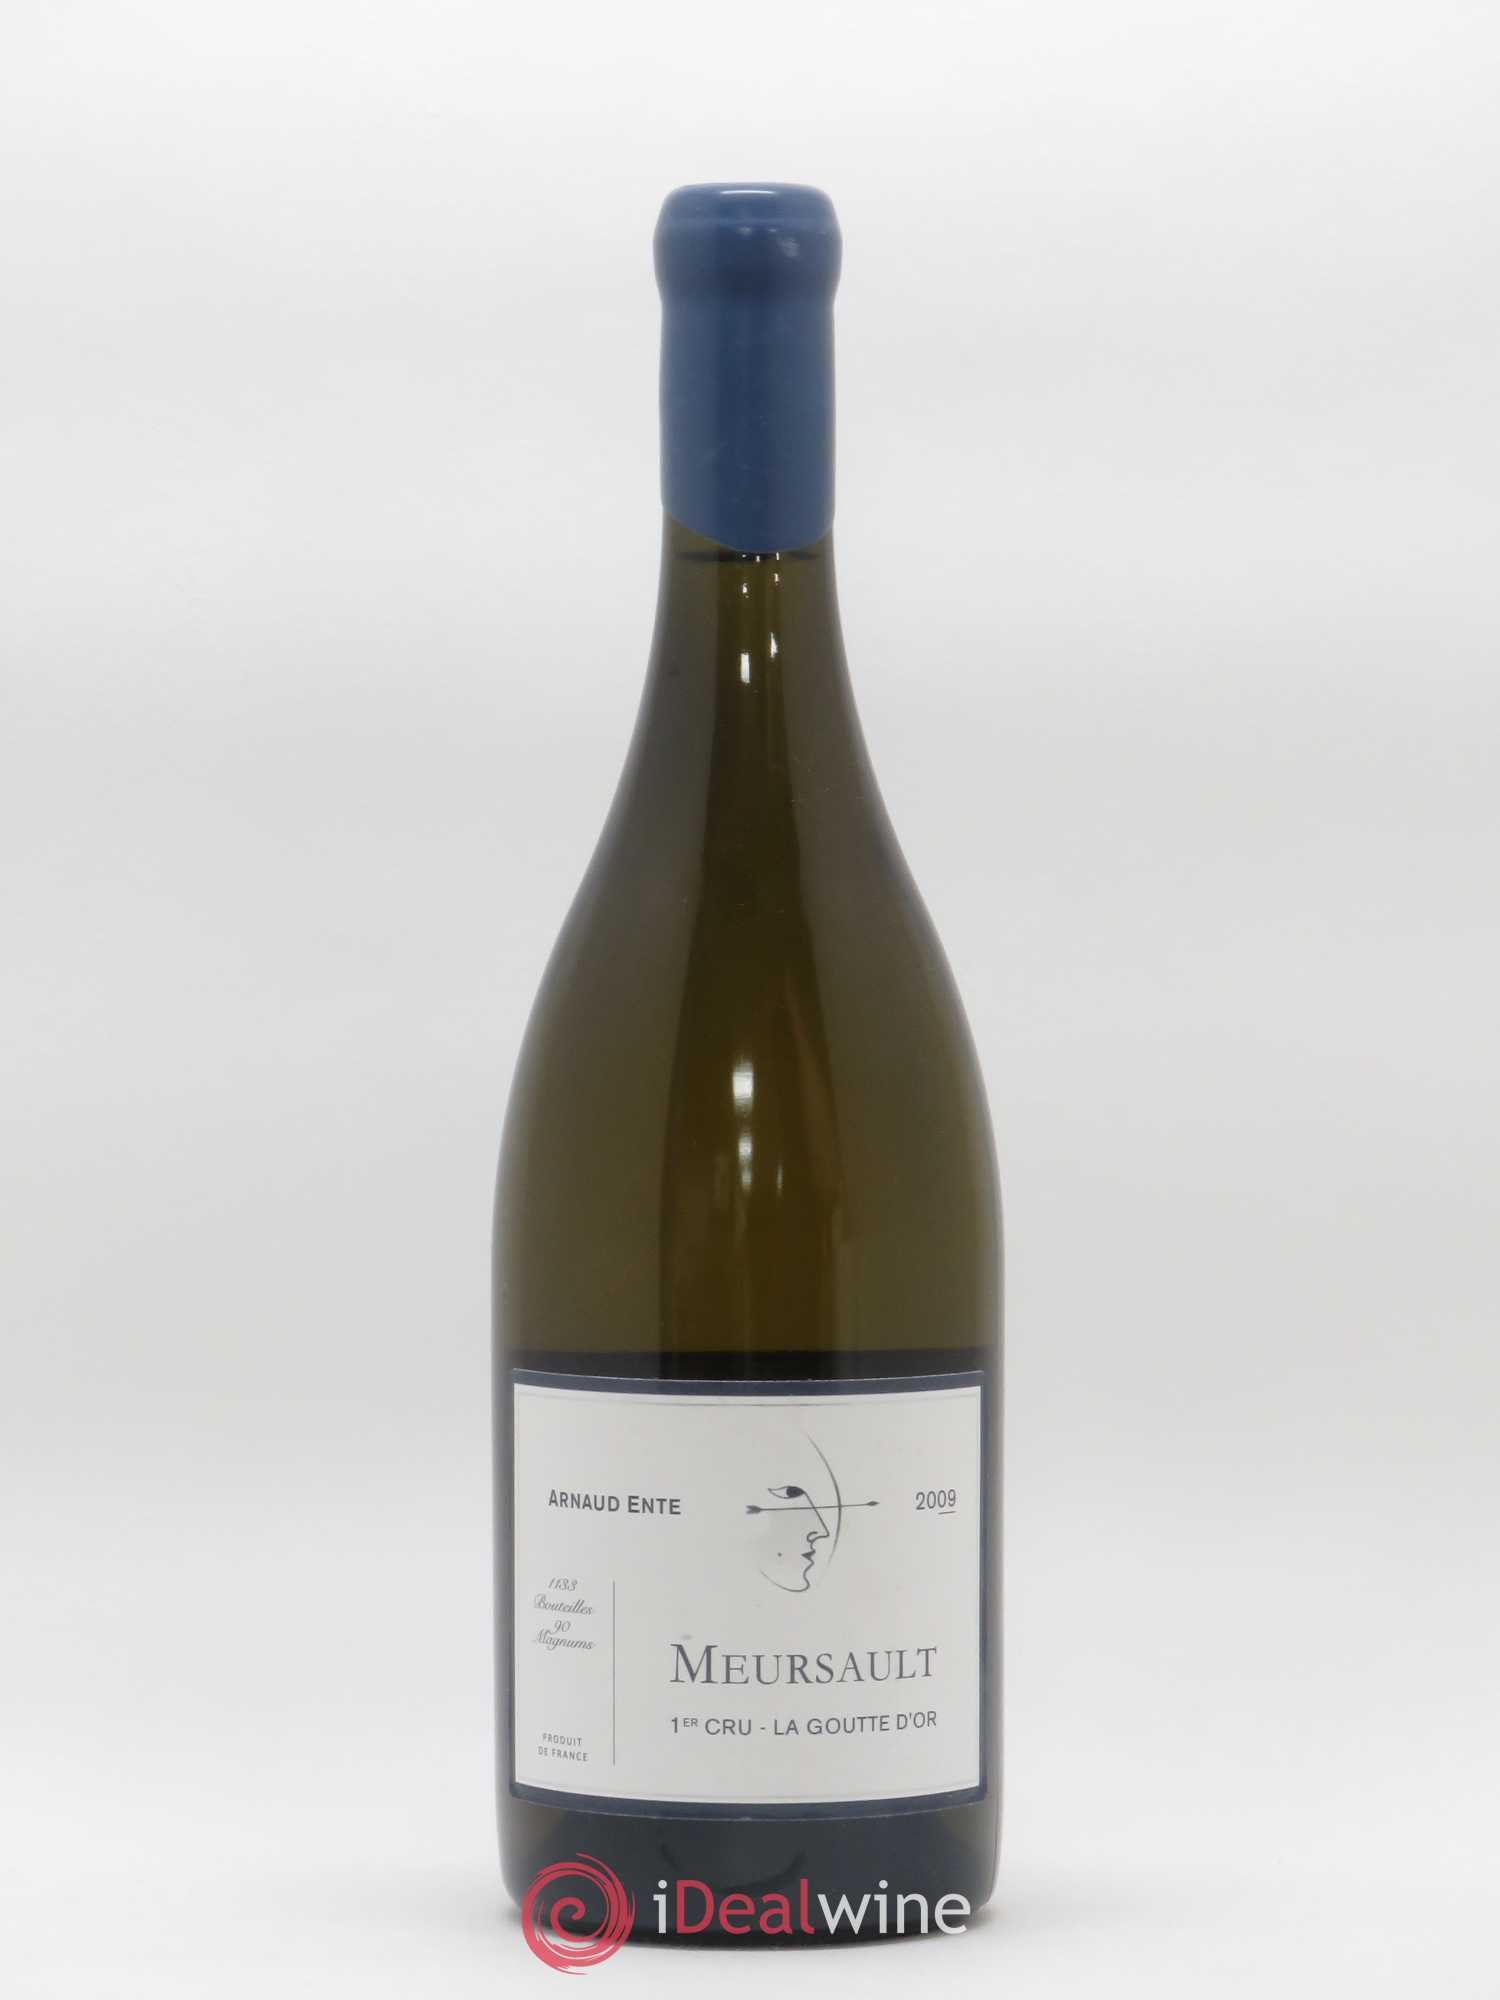 Meursault 1er Cru Goutte d'Or Arnaud Ente (Domaine)  2009 - Lot of 1 Bottle